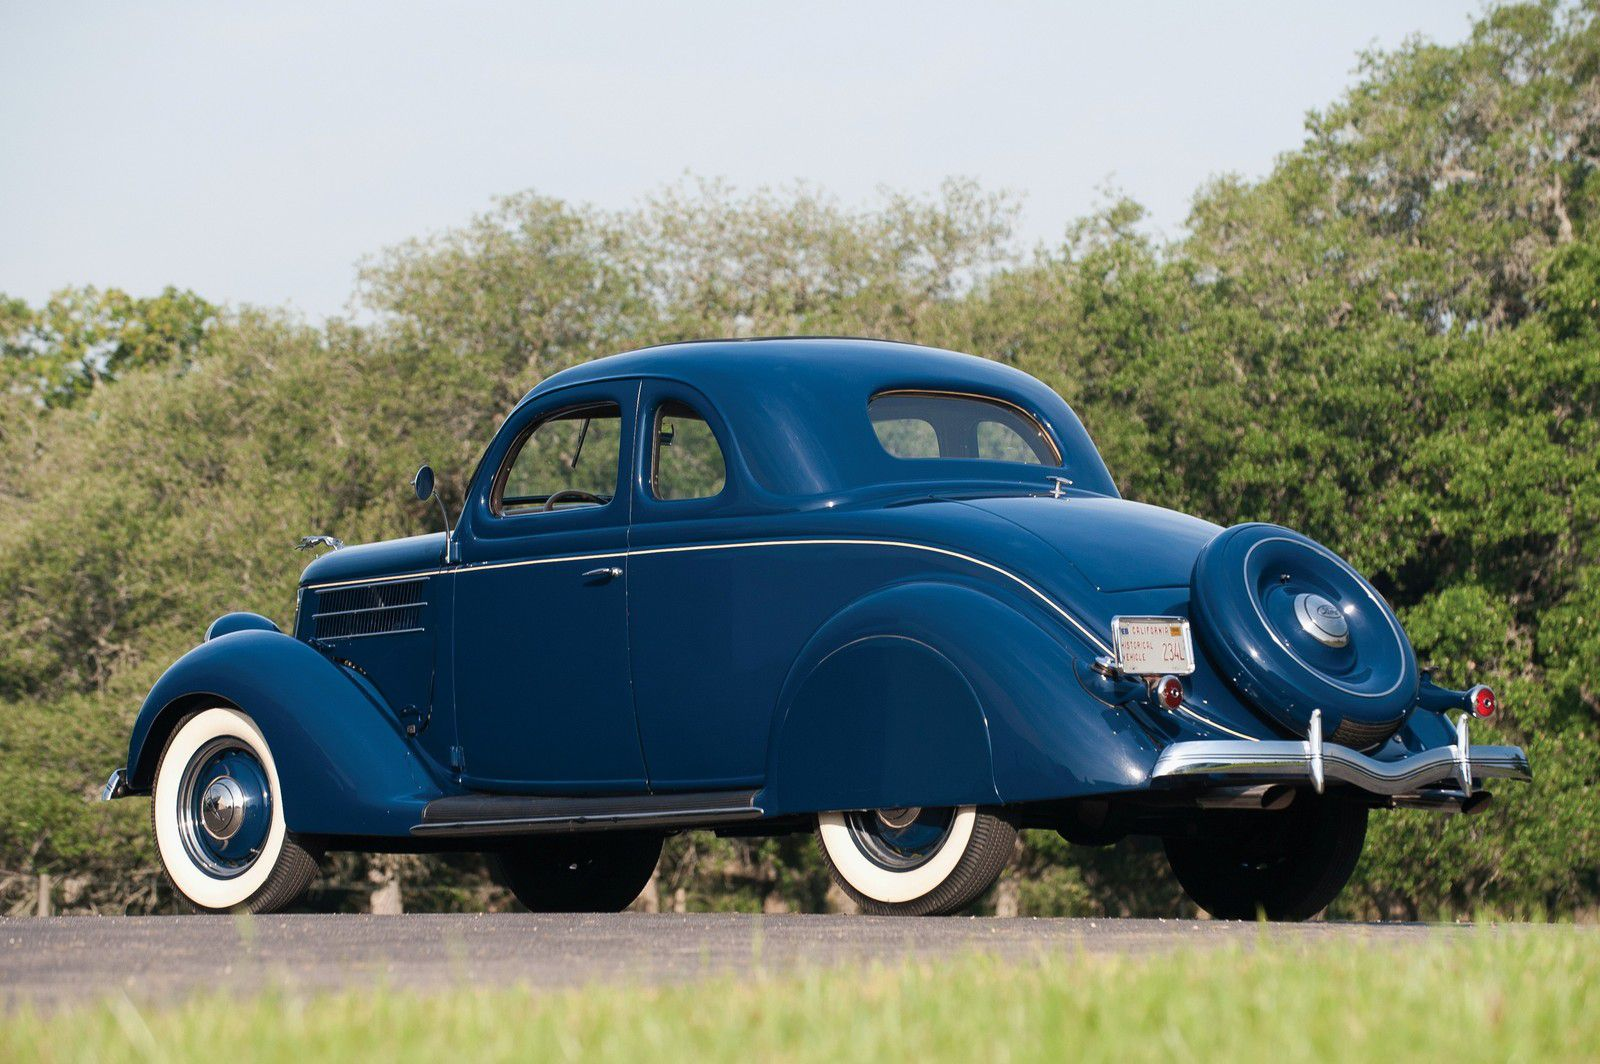 VOITURES DE LEGENDE (1235) : FORD DeLUXE COUPE  5 WINDOW - 1936